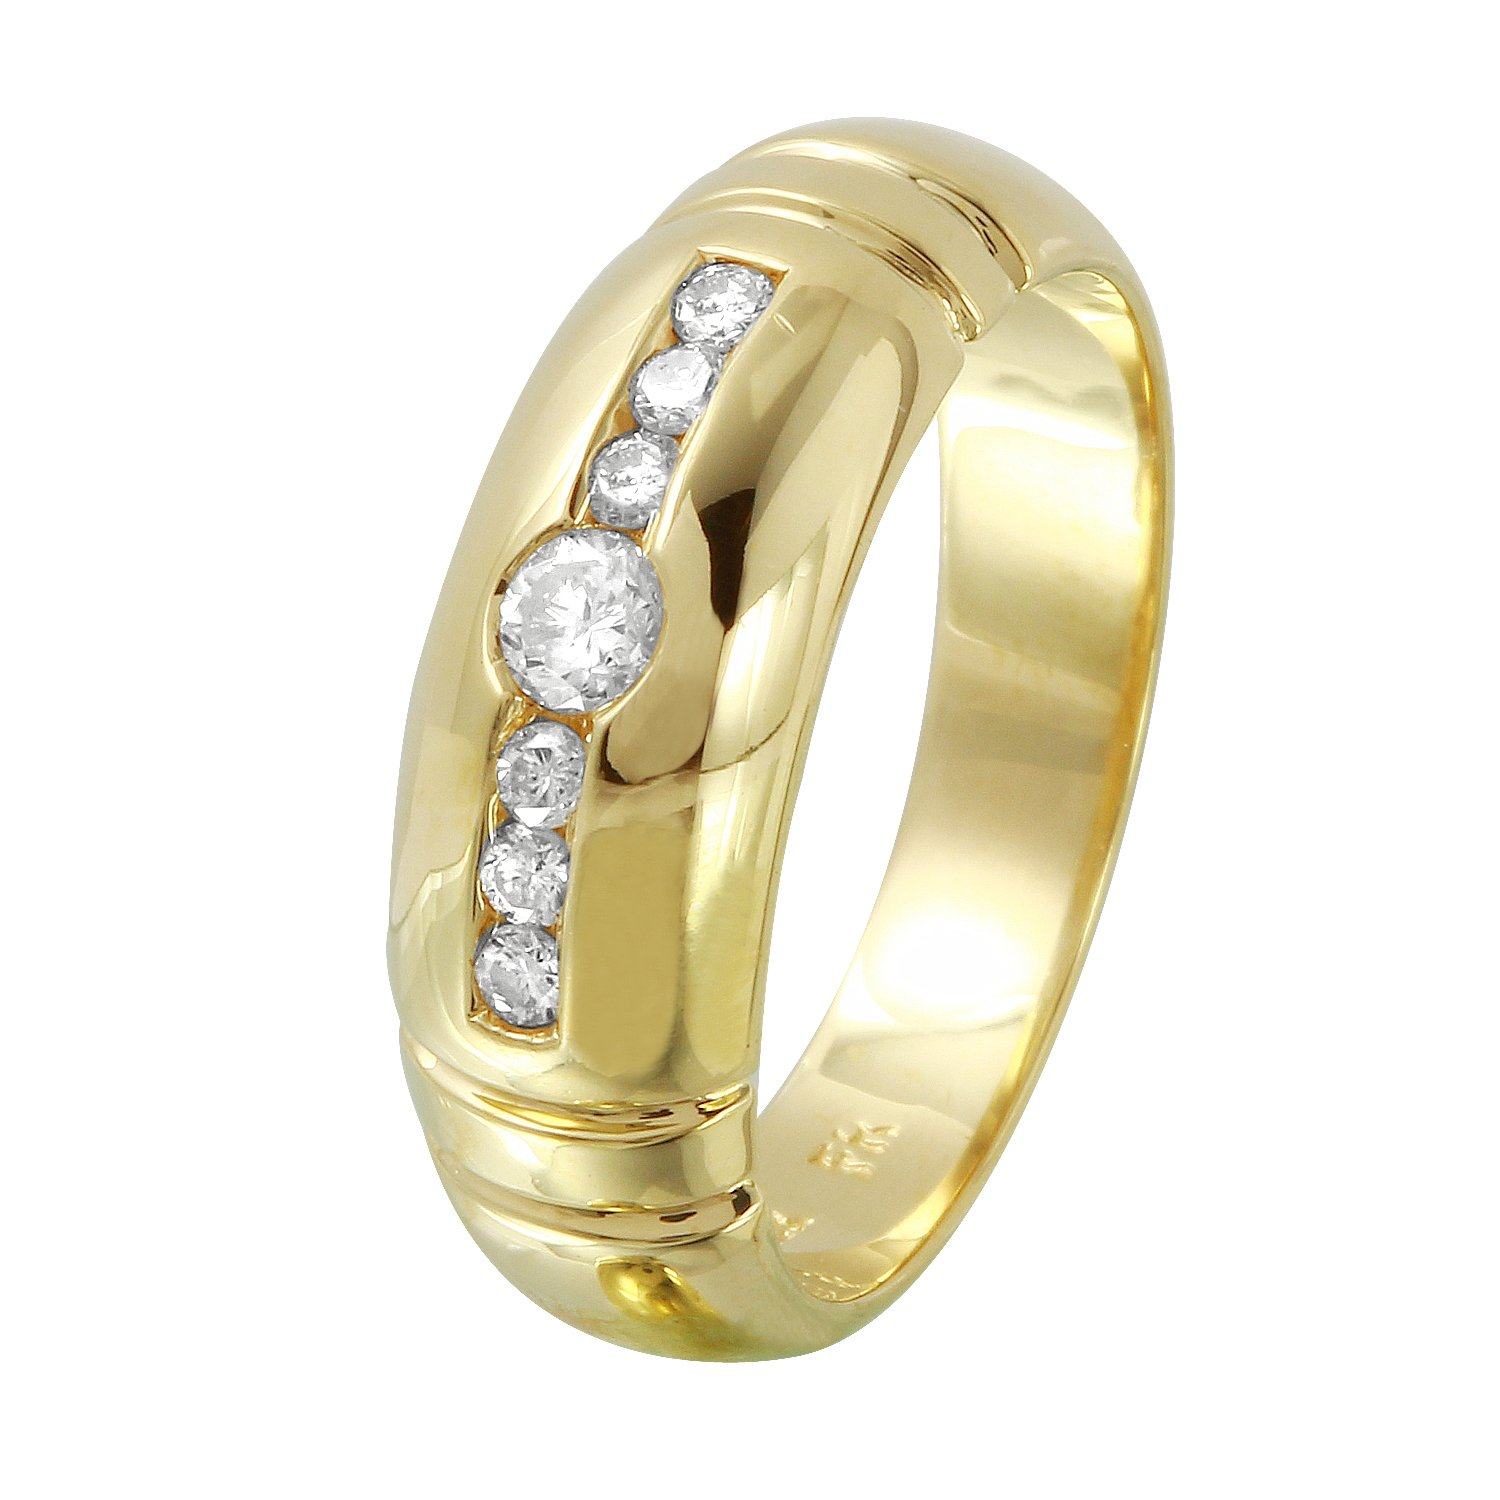 0.33 Carat Natural Diamond 14K Yellow Gold Wedding Band for Men Size 9